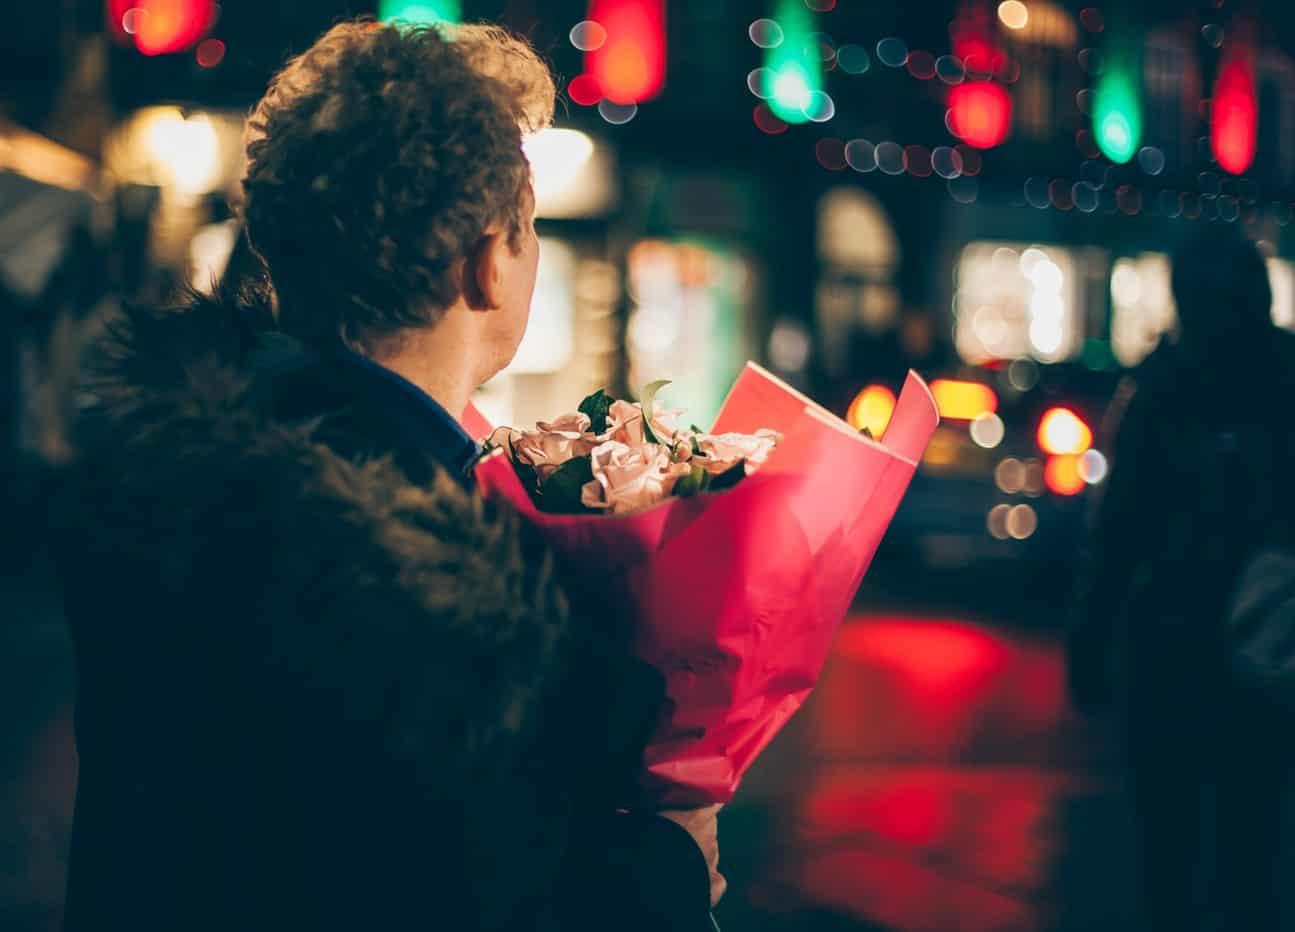 A man stood outside at night with a bouquet of flowers